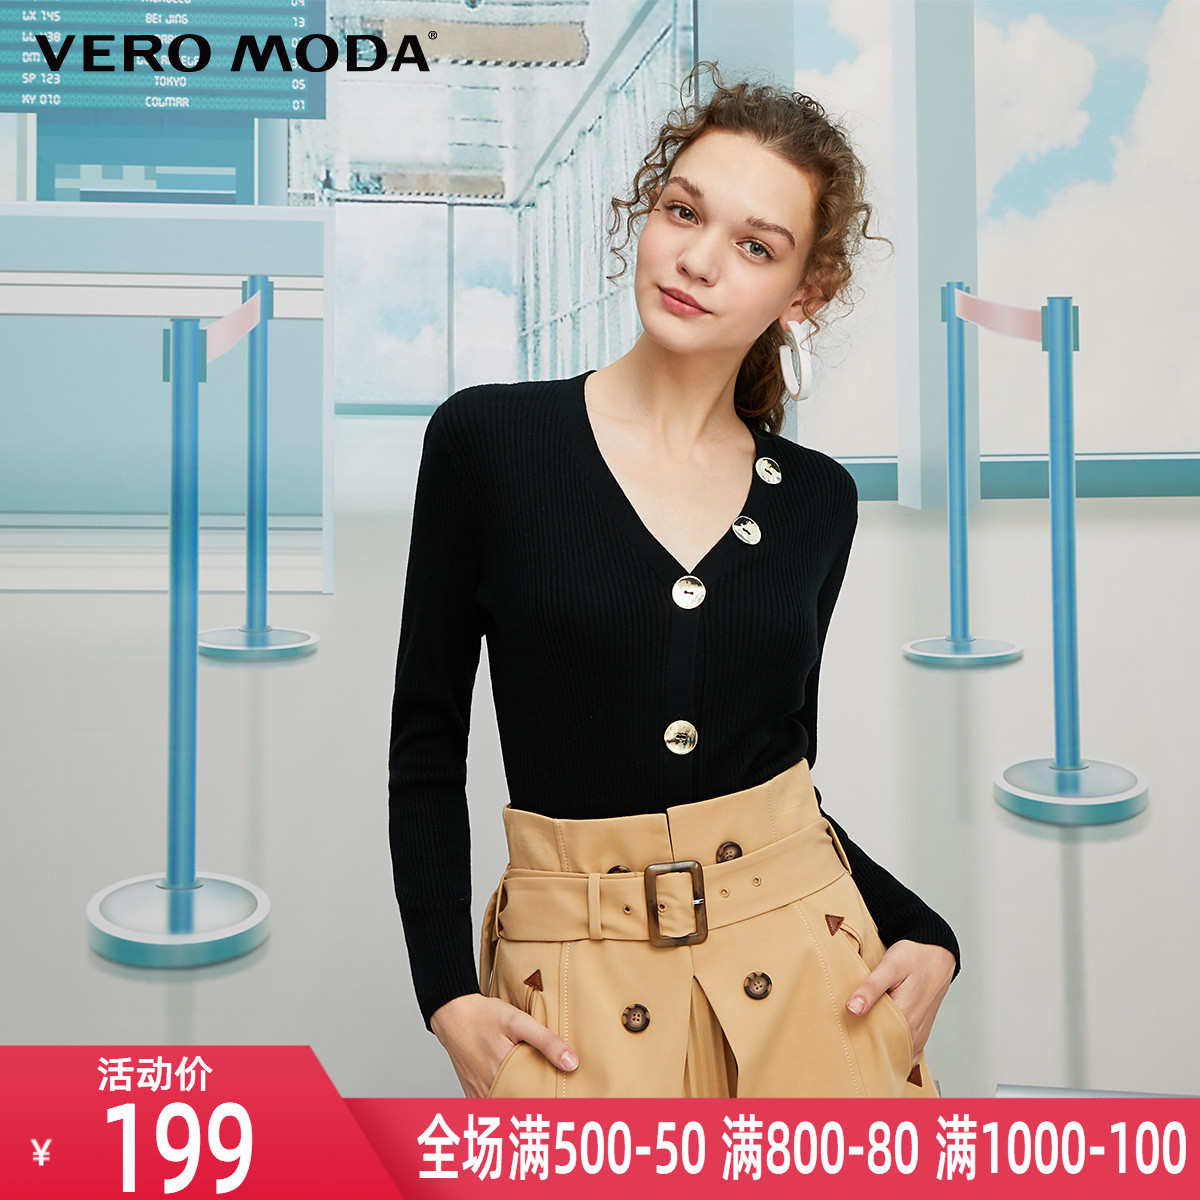 Vero moda2019 autumn winter eating earth sweater Vintage spice color knitted cardigan women 319324555